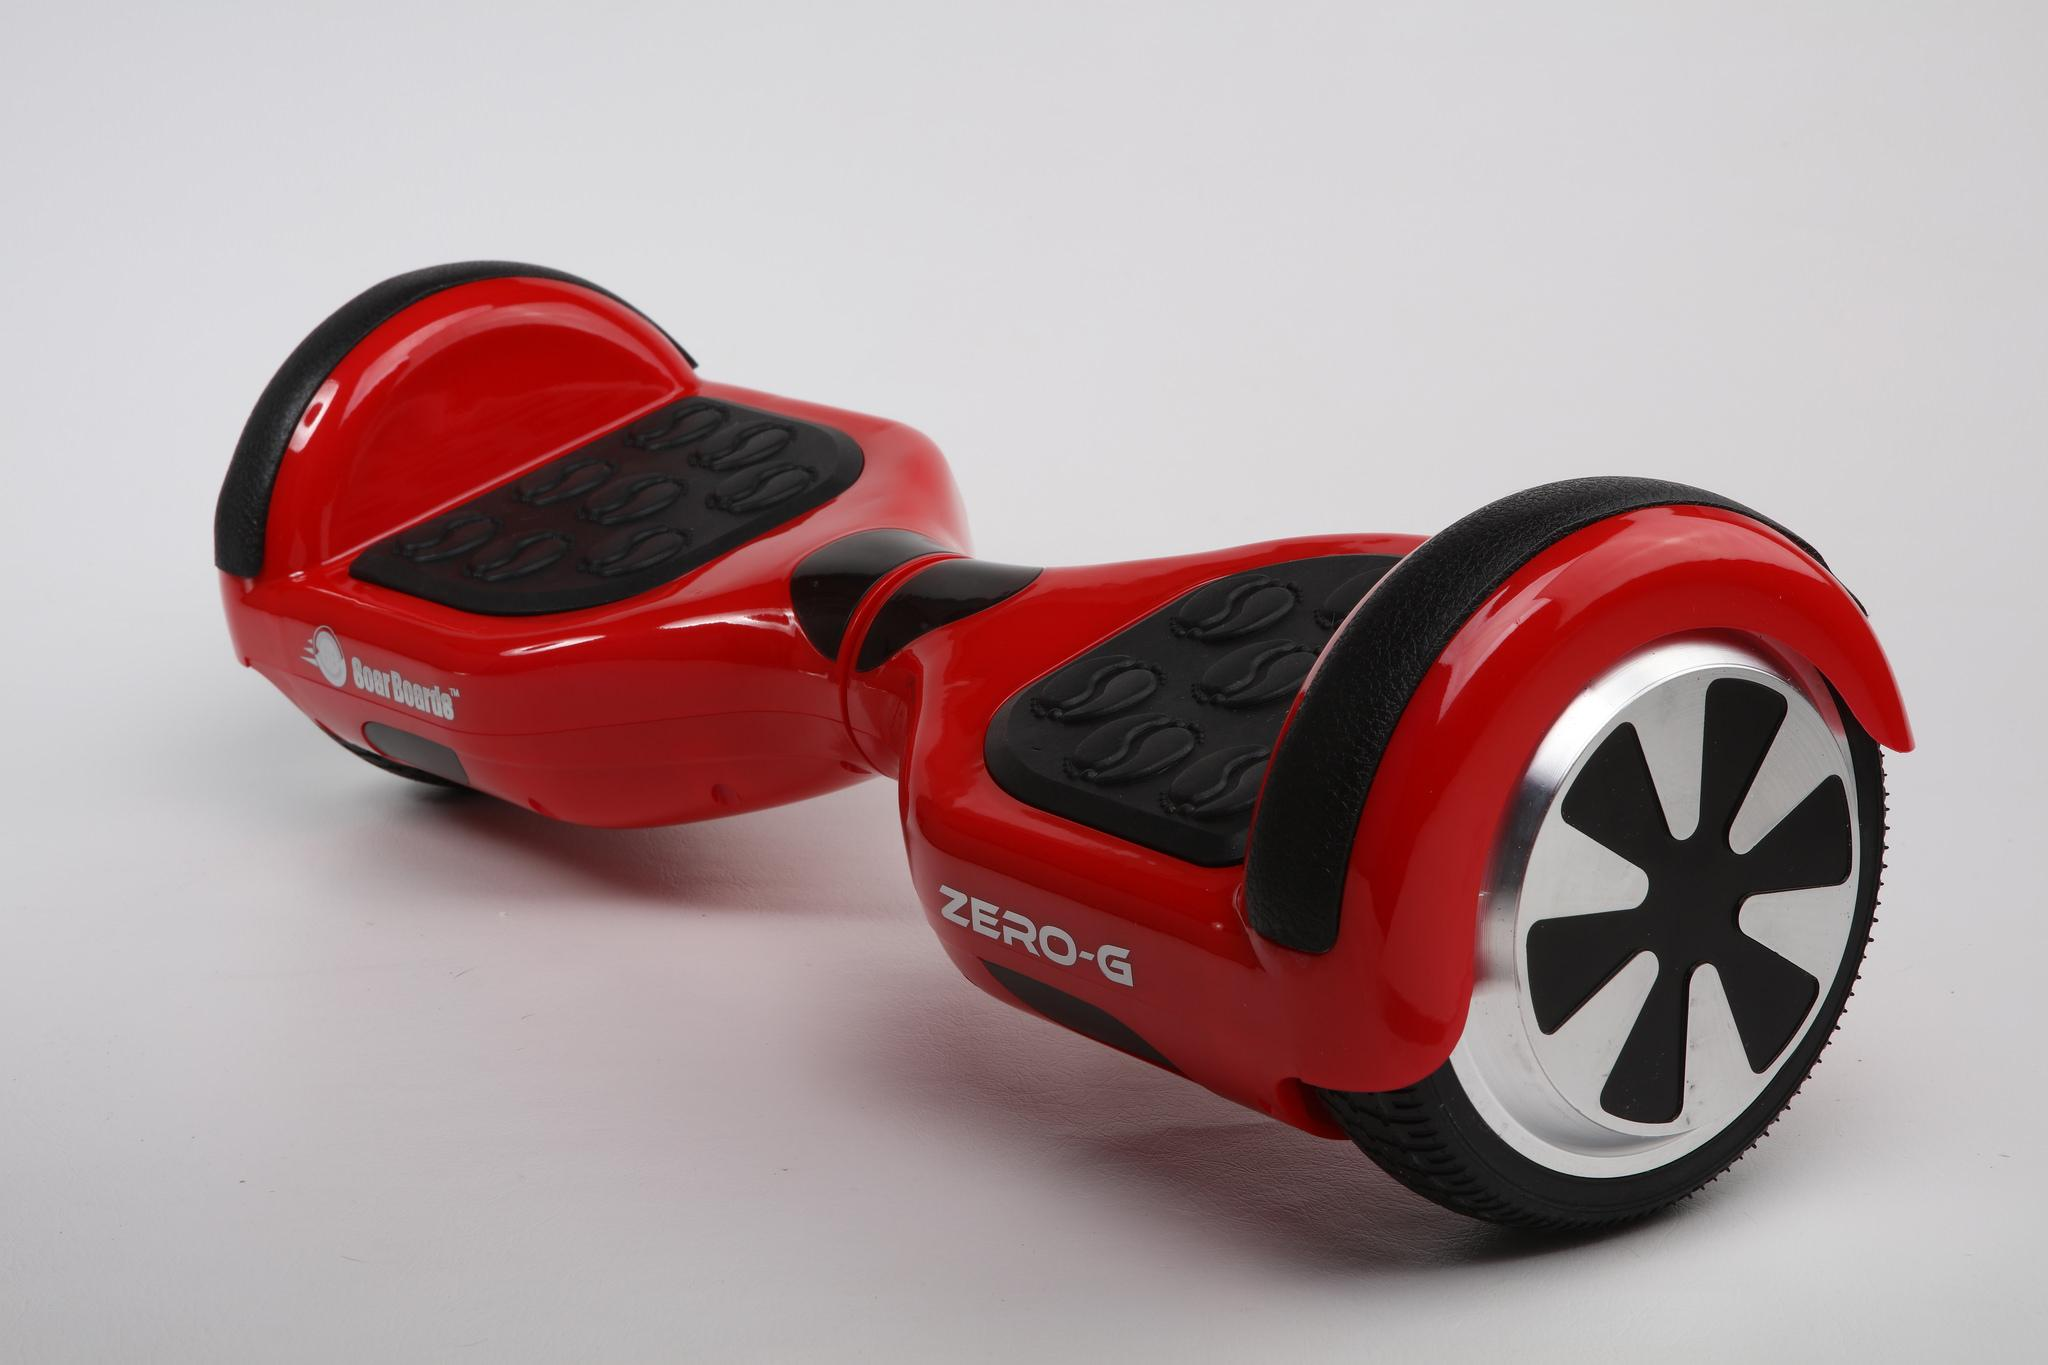 More formal names of the hoverboard include Zero G Hands Free Segway and 2 Wheel Self Balancing Scooter.